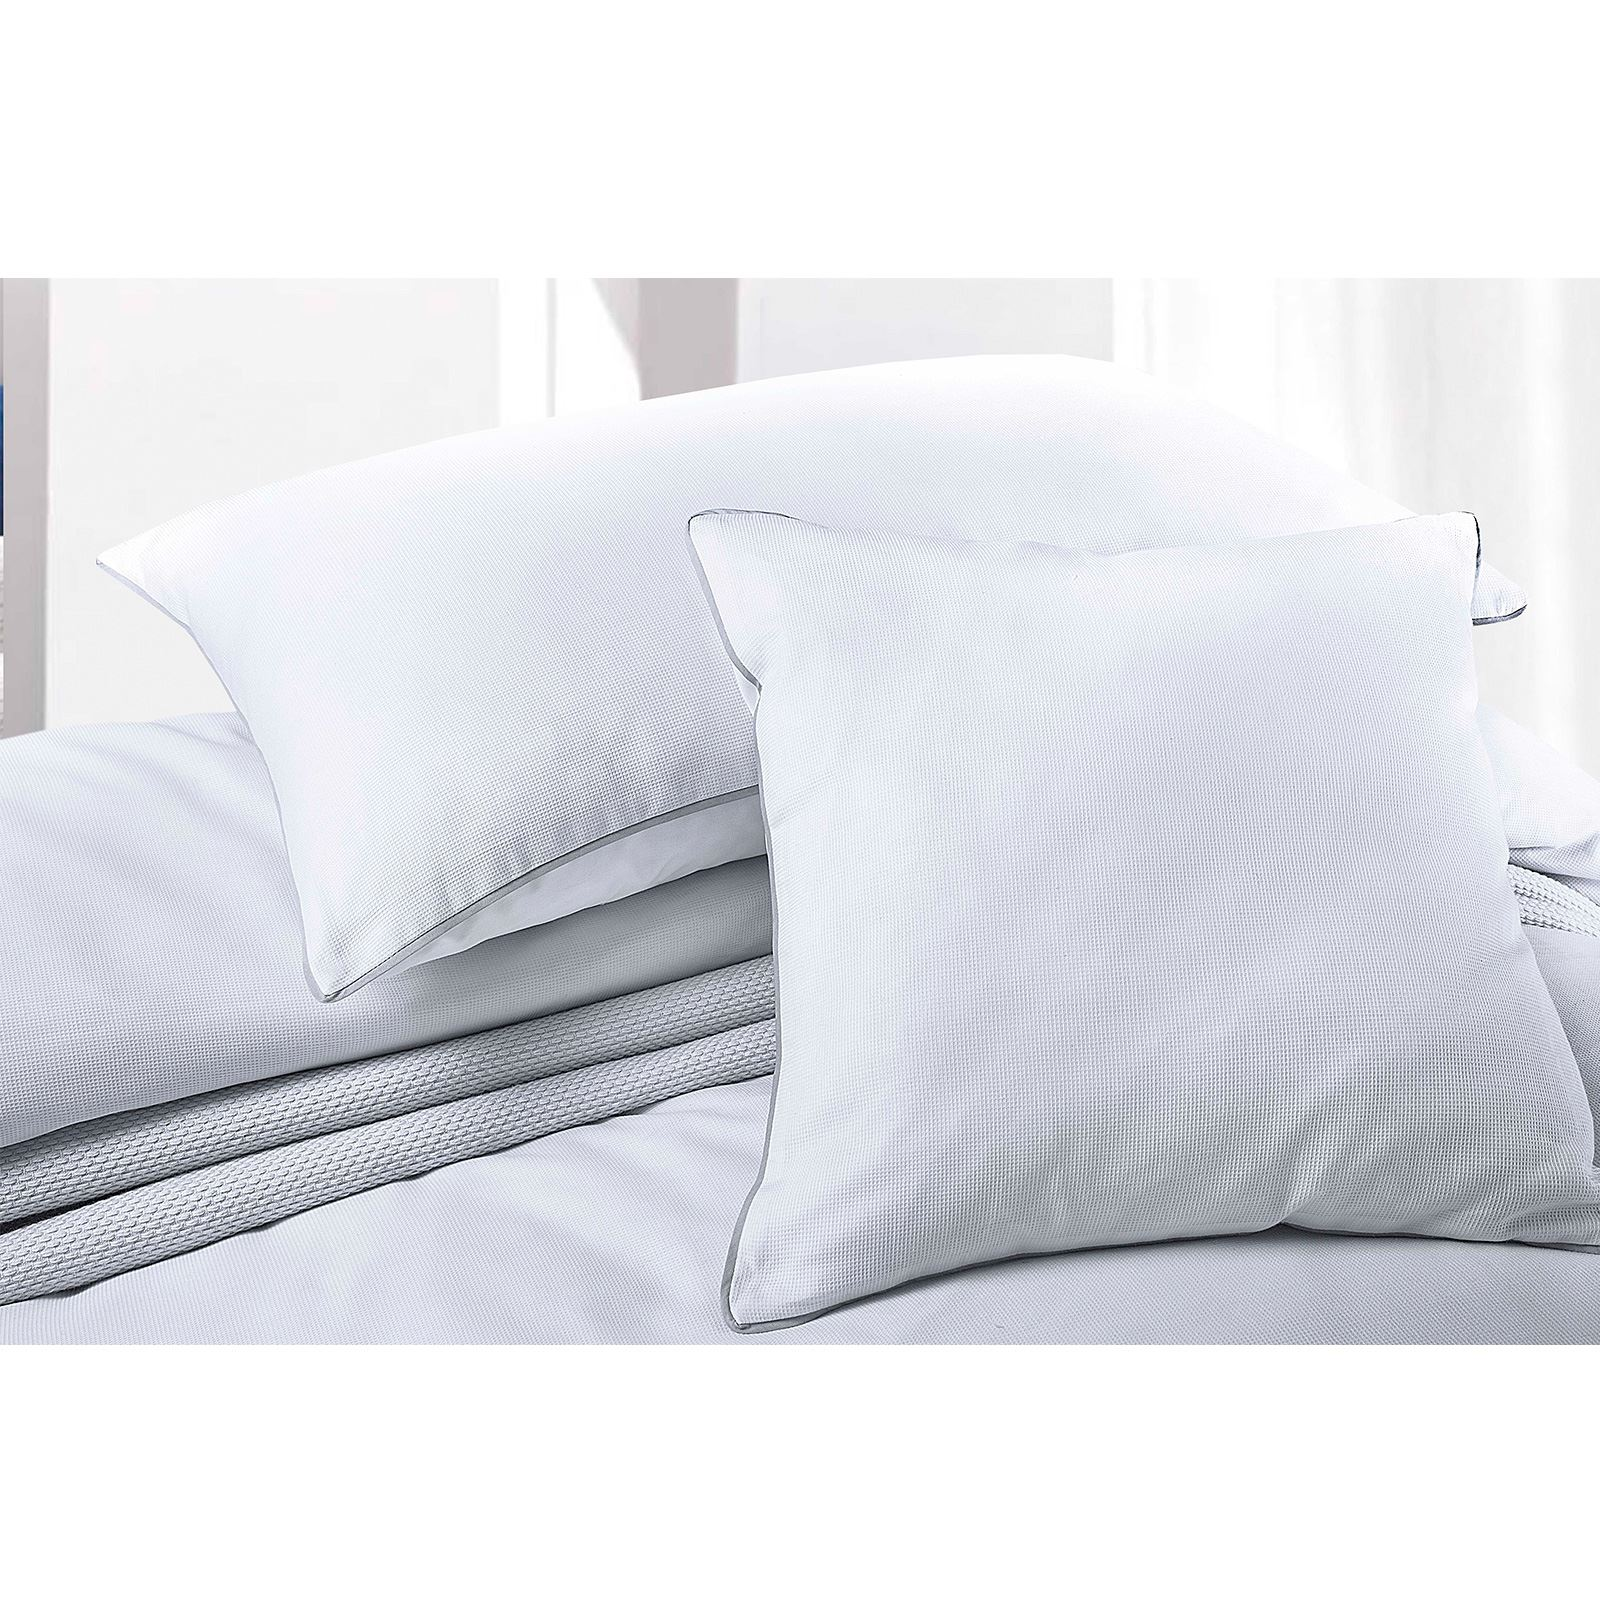 Luxury-200-Thread-Woven-Waffle-Checked-100-Cotton-Quilt-Duvet-Cover-Set-White thumbnail 6